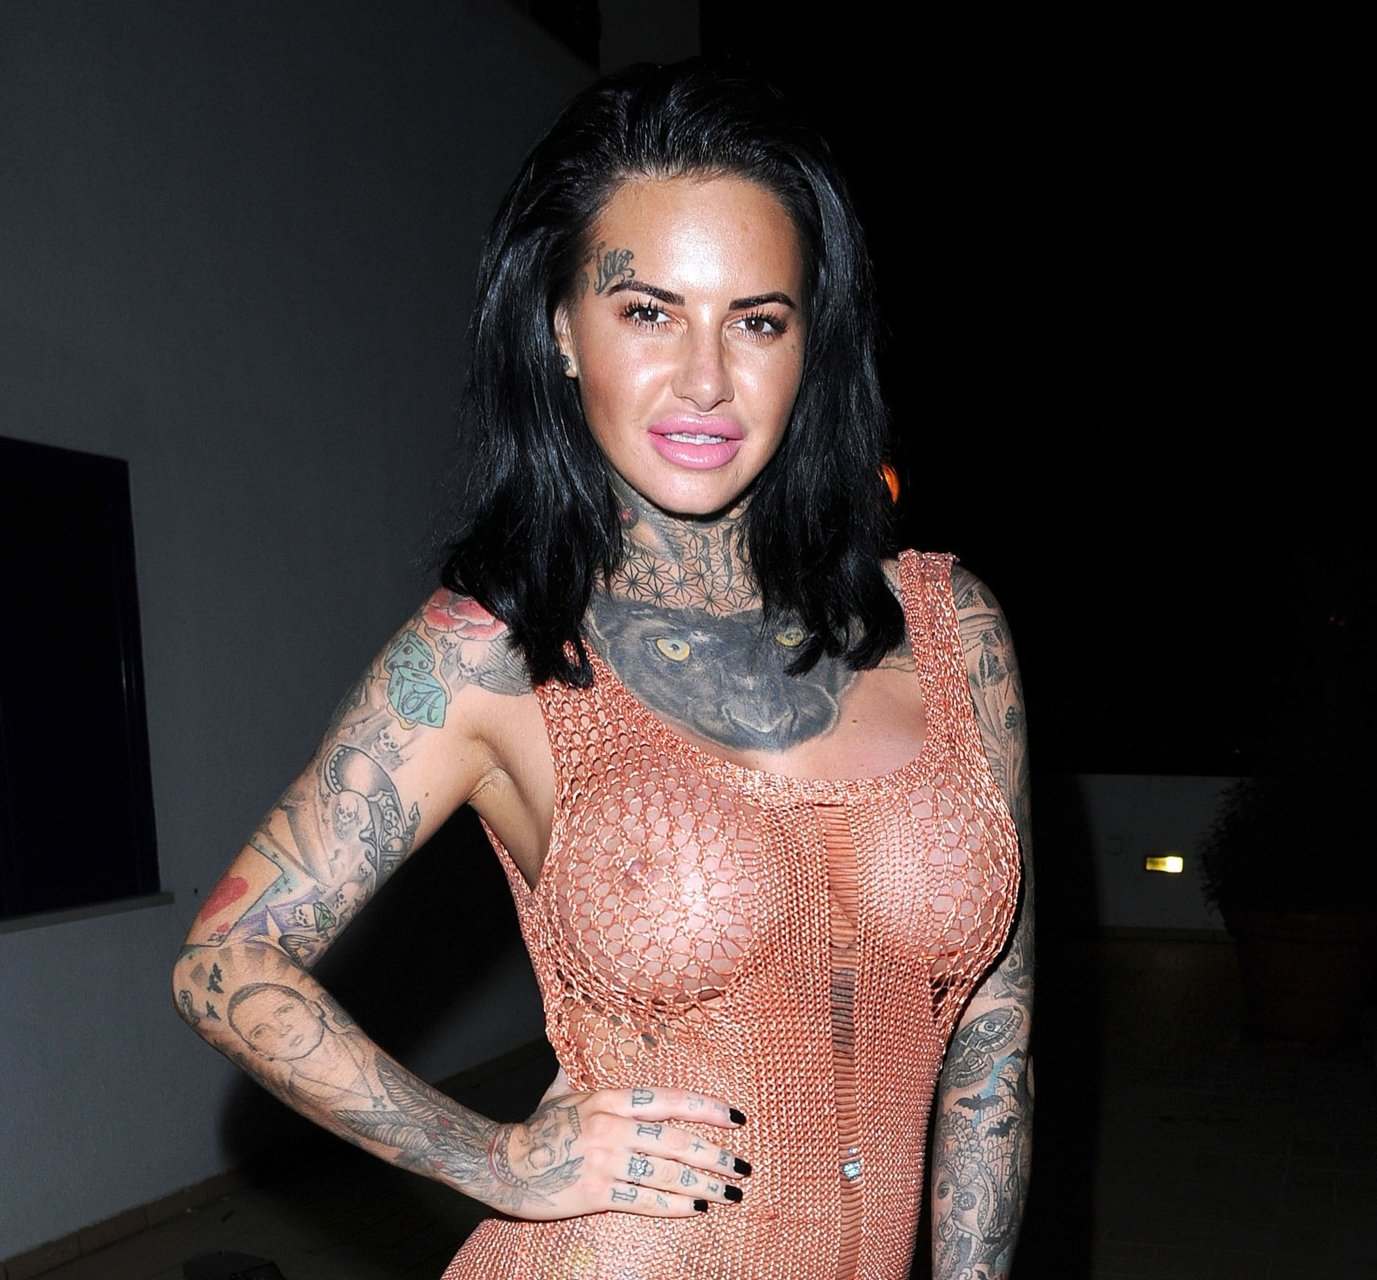 Sex Jemma Lucy nude (25 photos), Sexy, Hot, Selfie, see through 2006